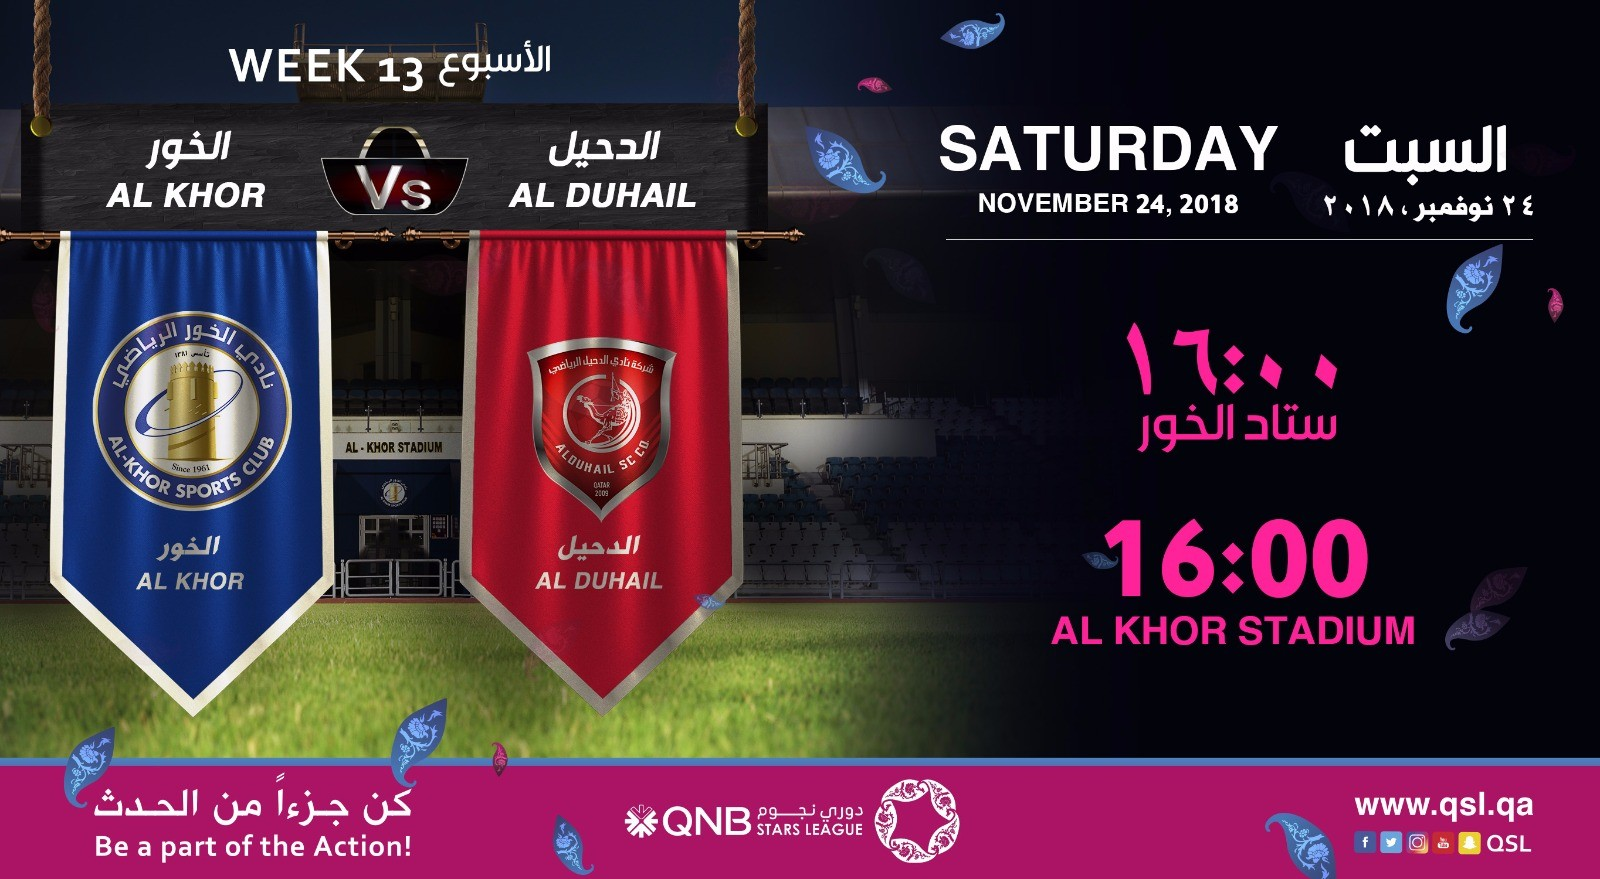 QNB Stars League Week 13 — Al Khor vs Al Duhail